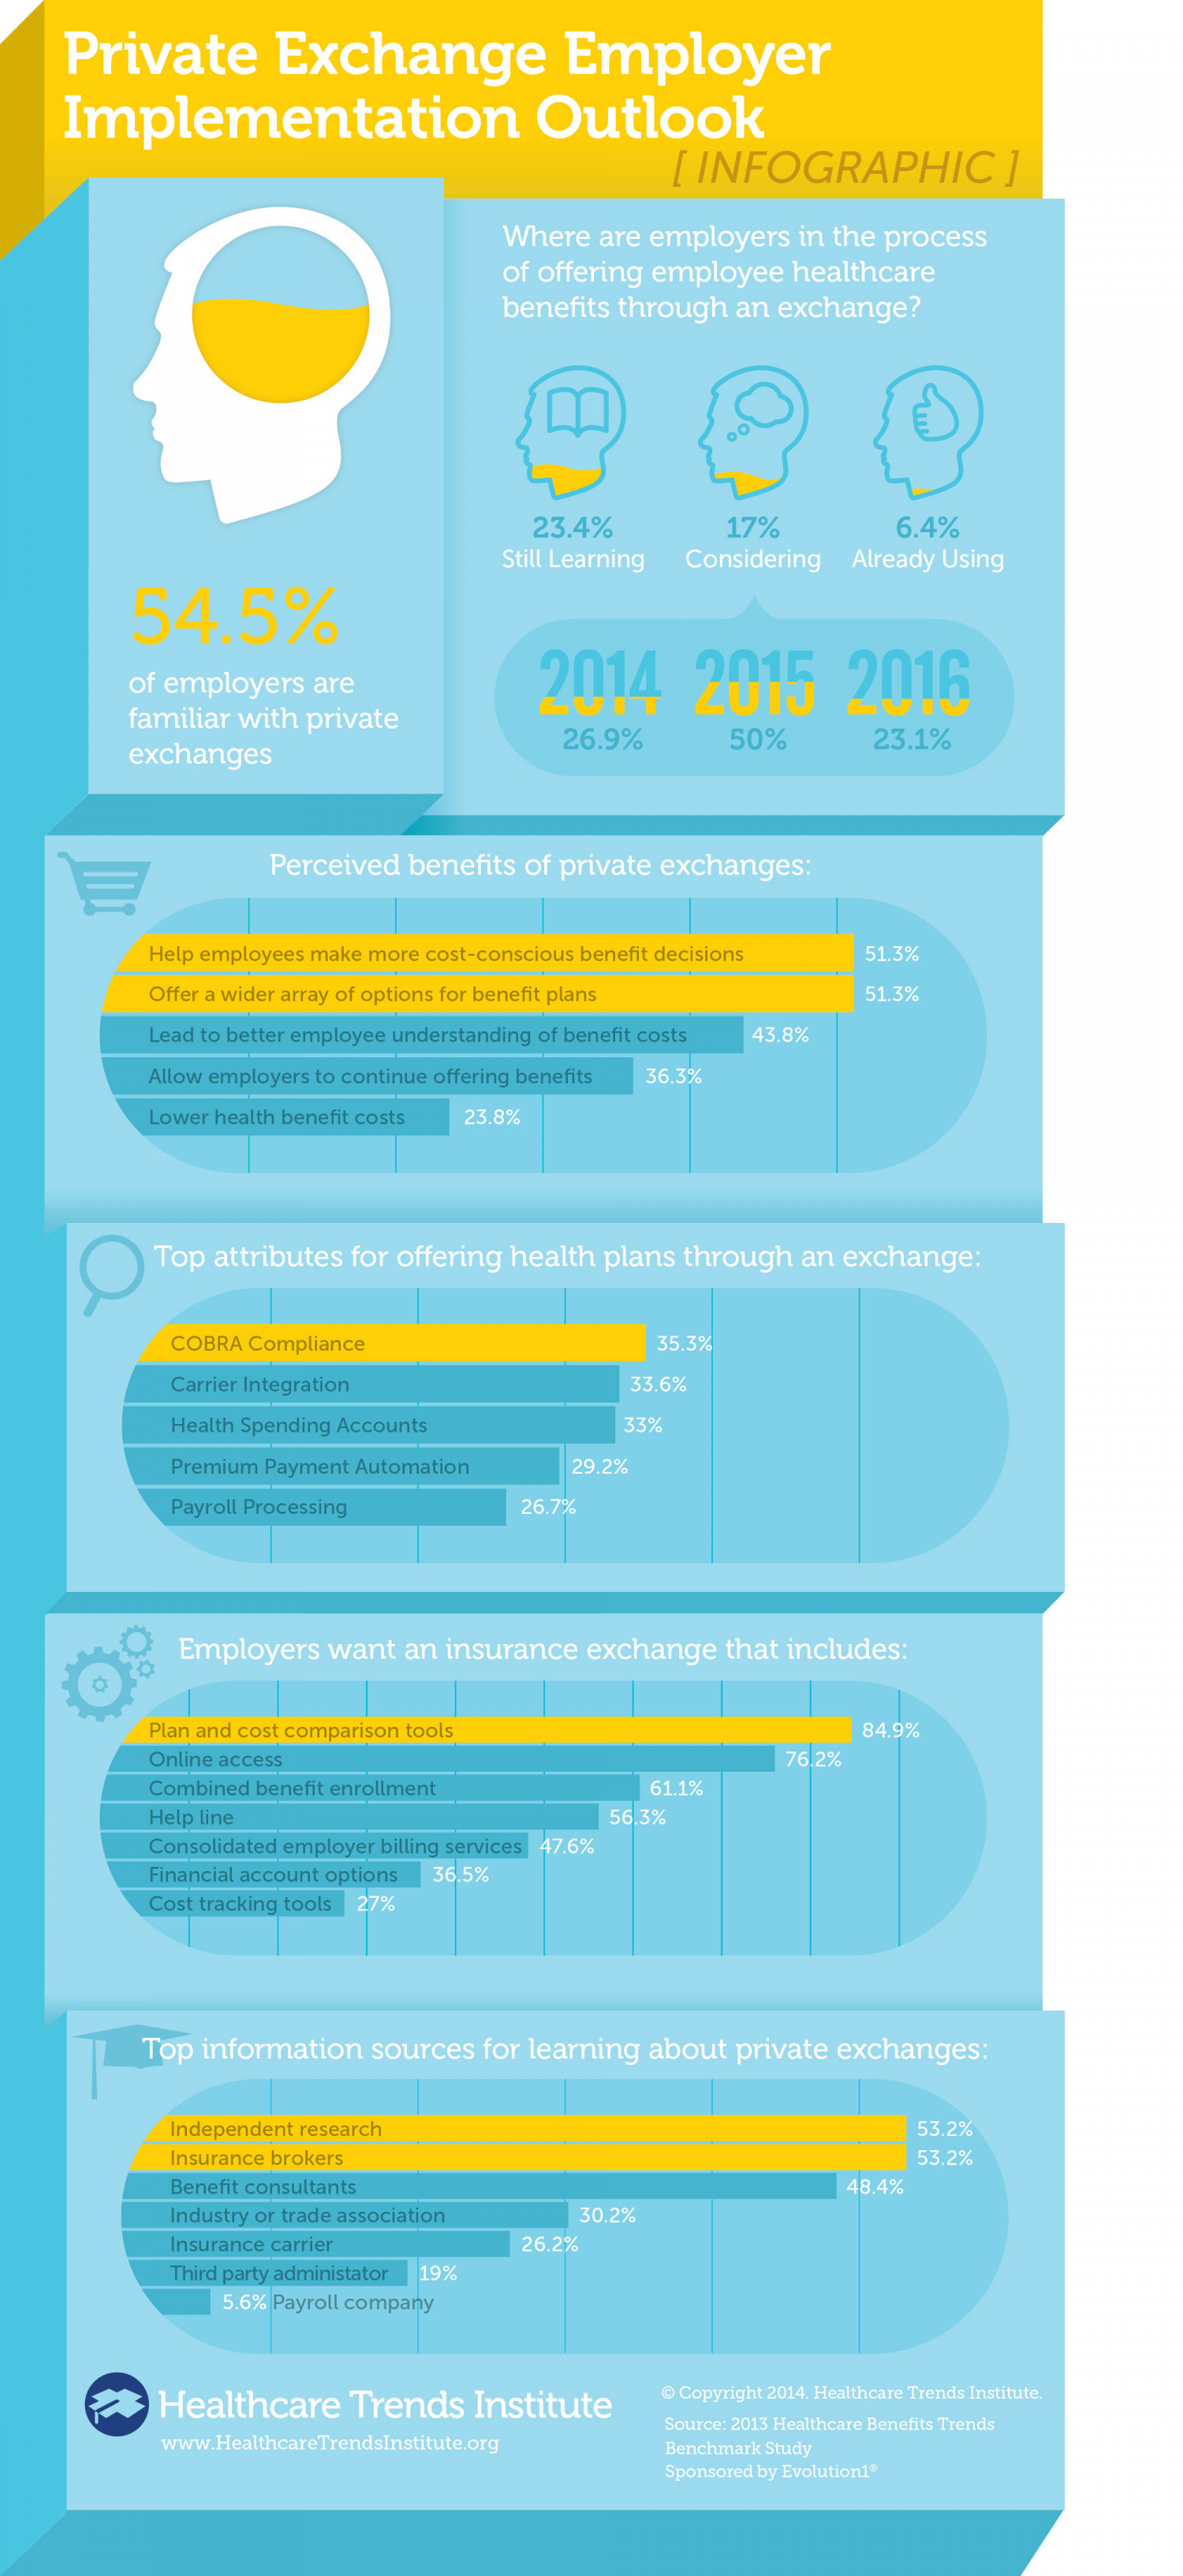 Private Exchanges and Employer Implementation Infographic